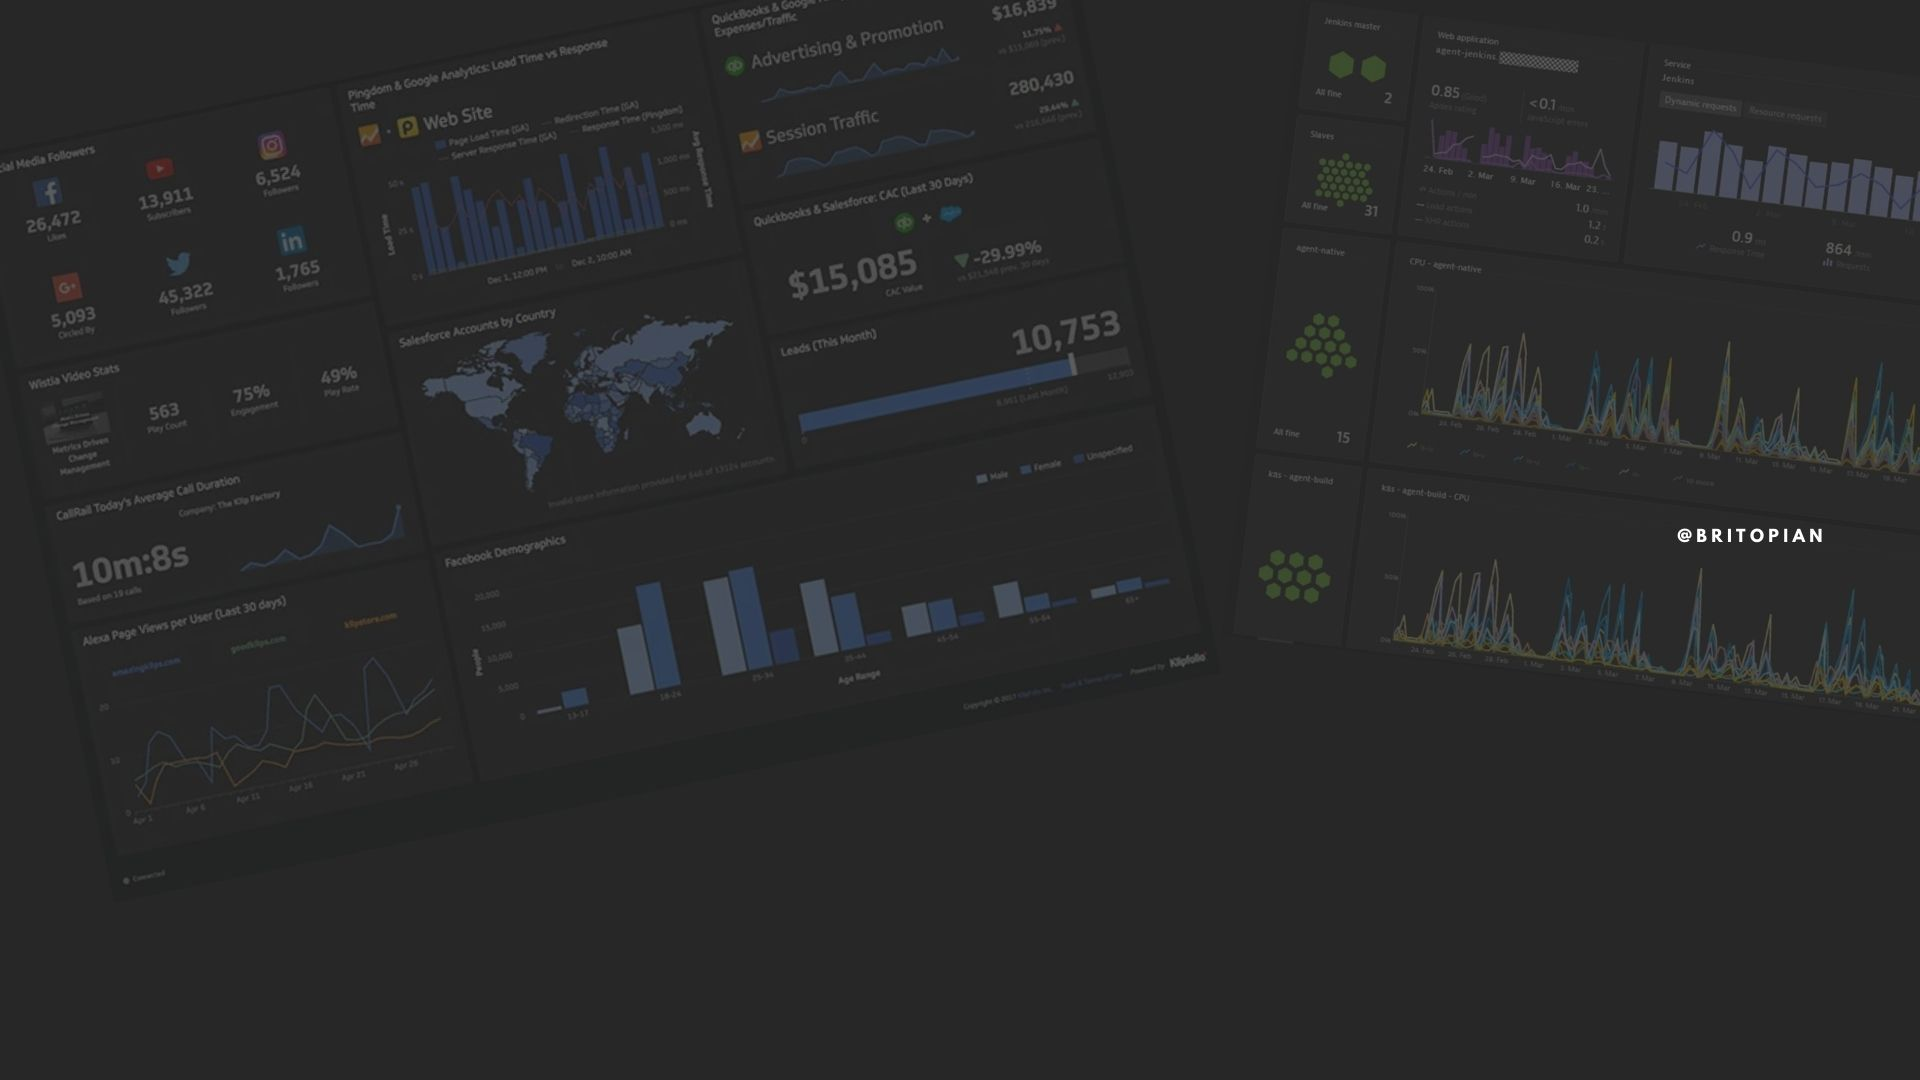 Data Insights Strategy: Making Smarter Recommendations